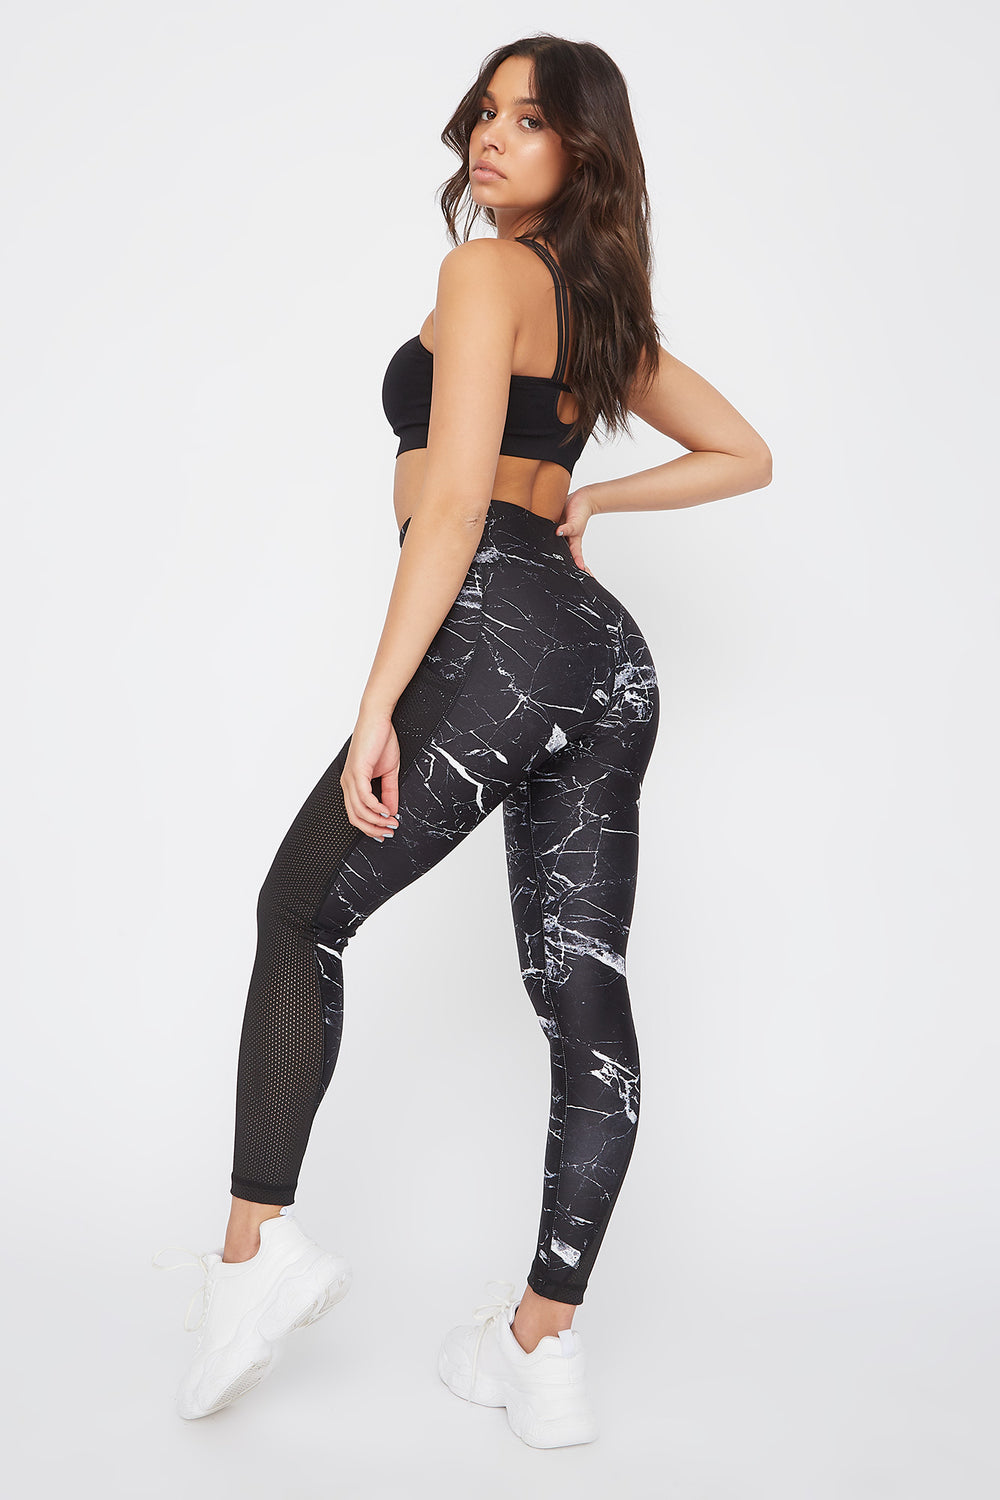 Legging Infinite Active à taille haute avec insertion de filet Noir et blanc